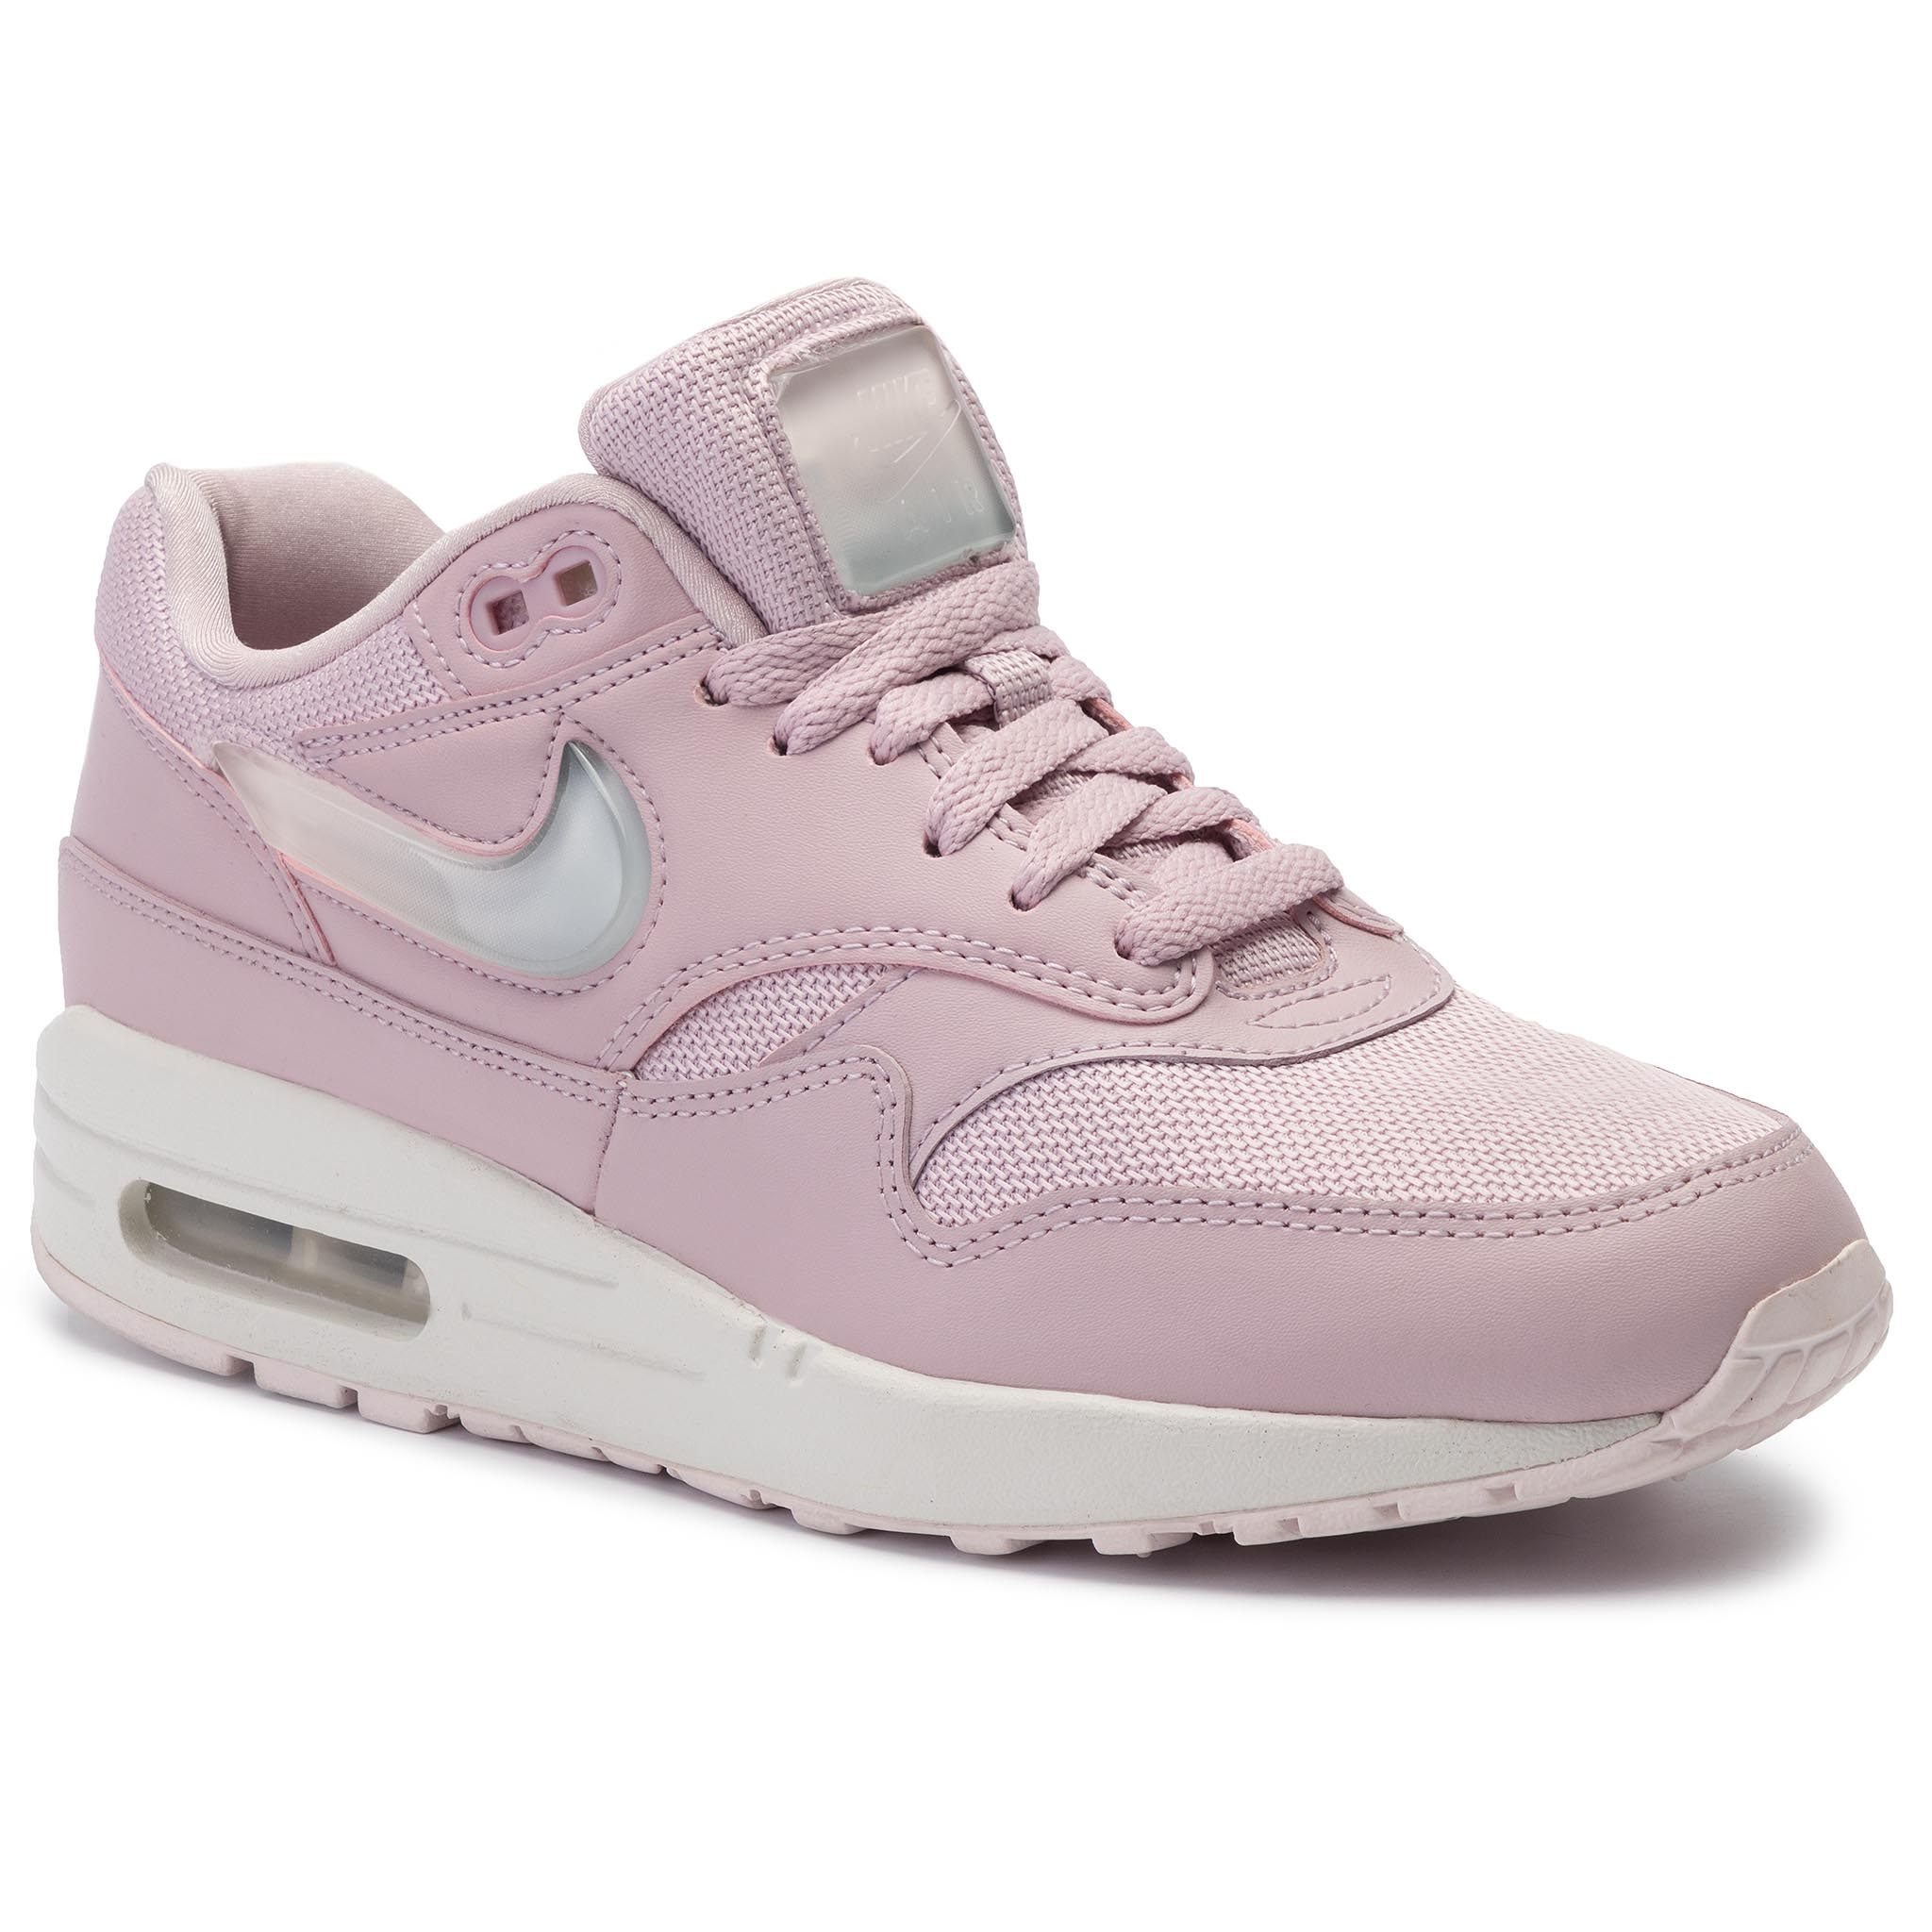 Pantofi NIKE - Air Max 1 Jp AT5248 500 Plum Chalk/Obsidian Mist